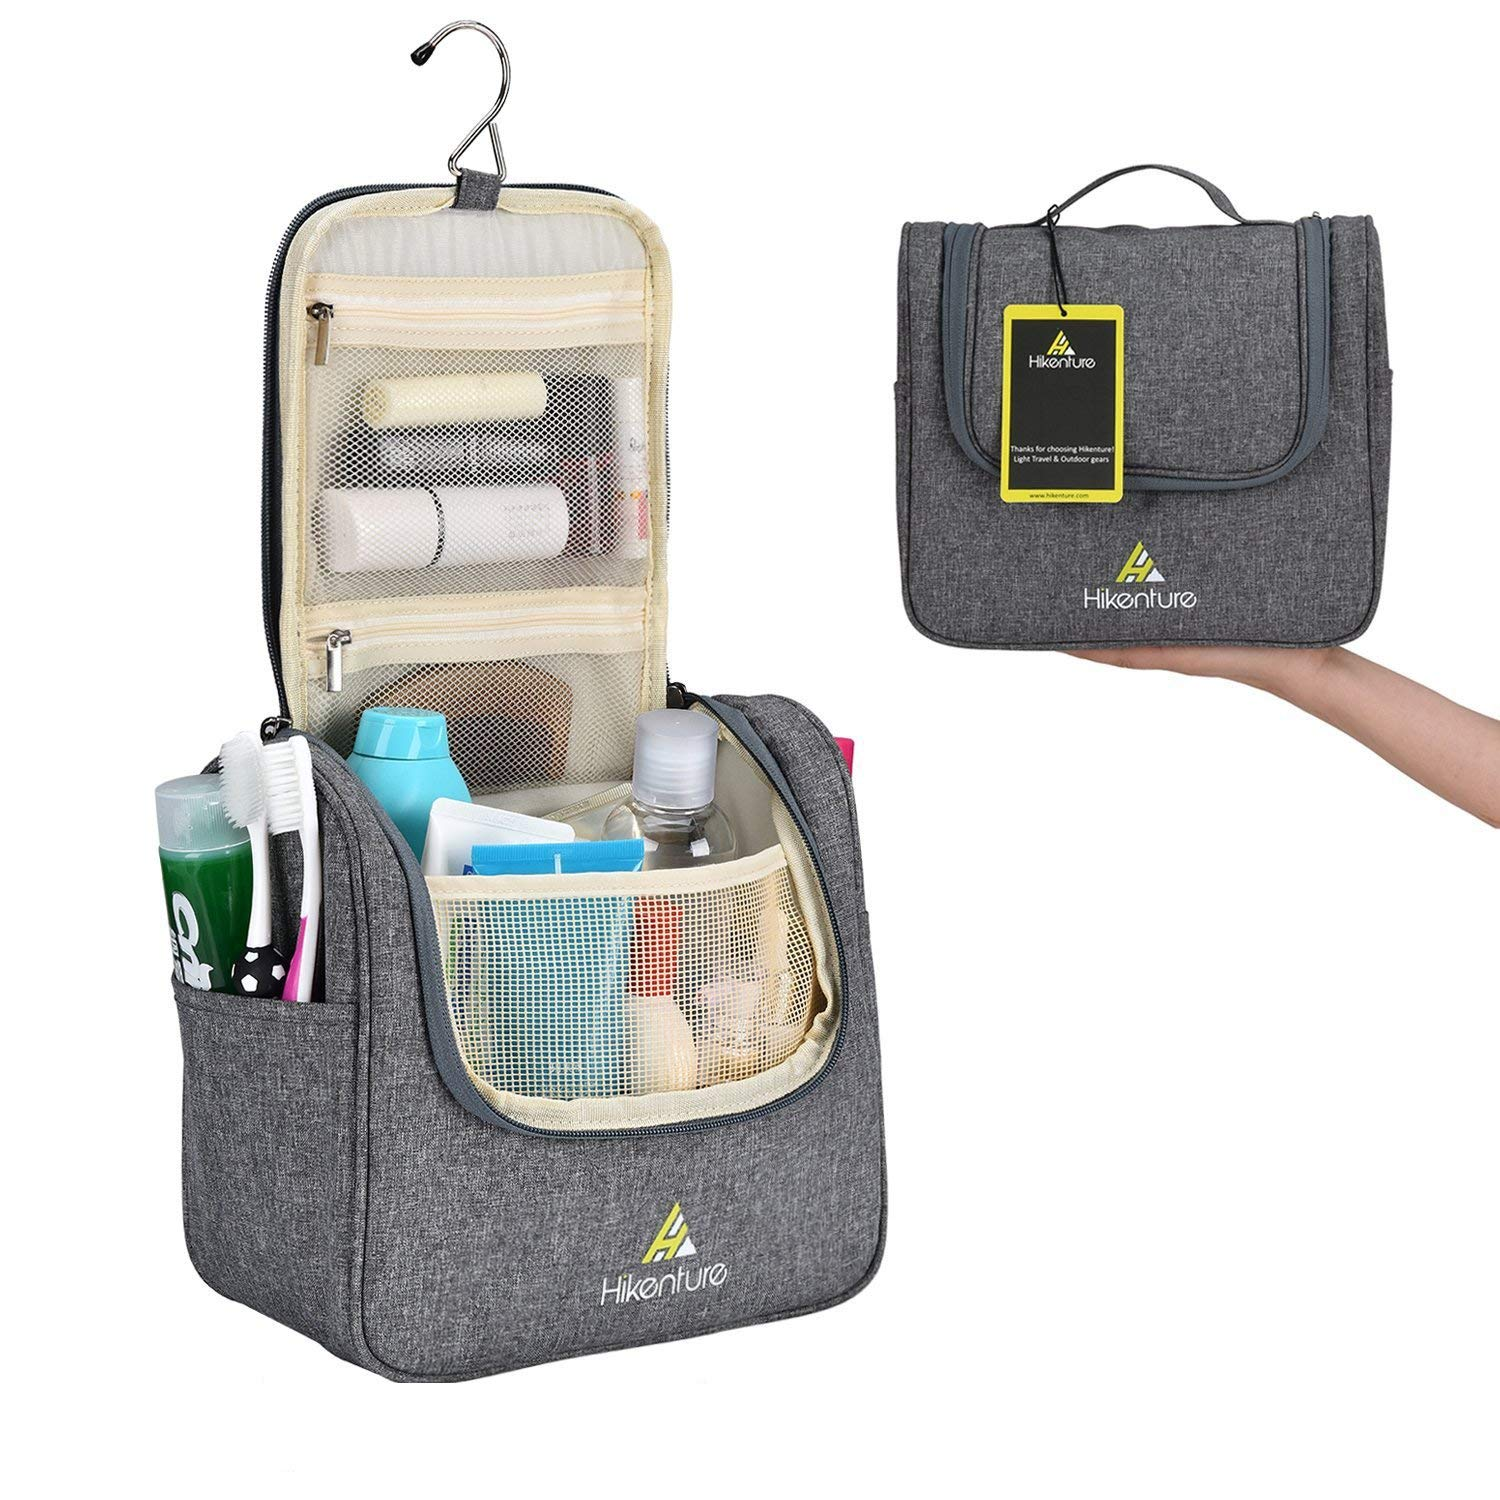 93229b9e88 Rver and Adventure Lover Gift Guide toiletry bag - Hedgers Abroad